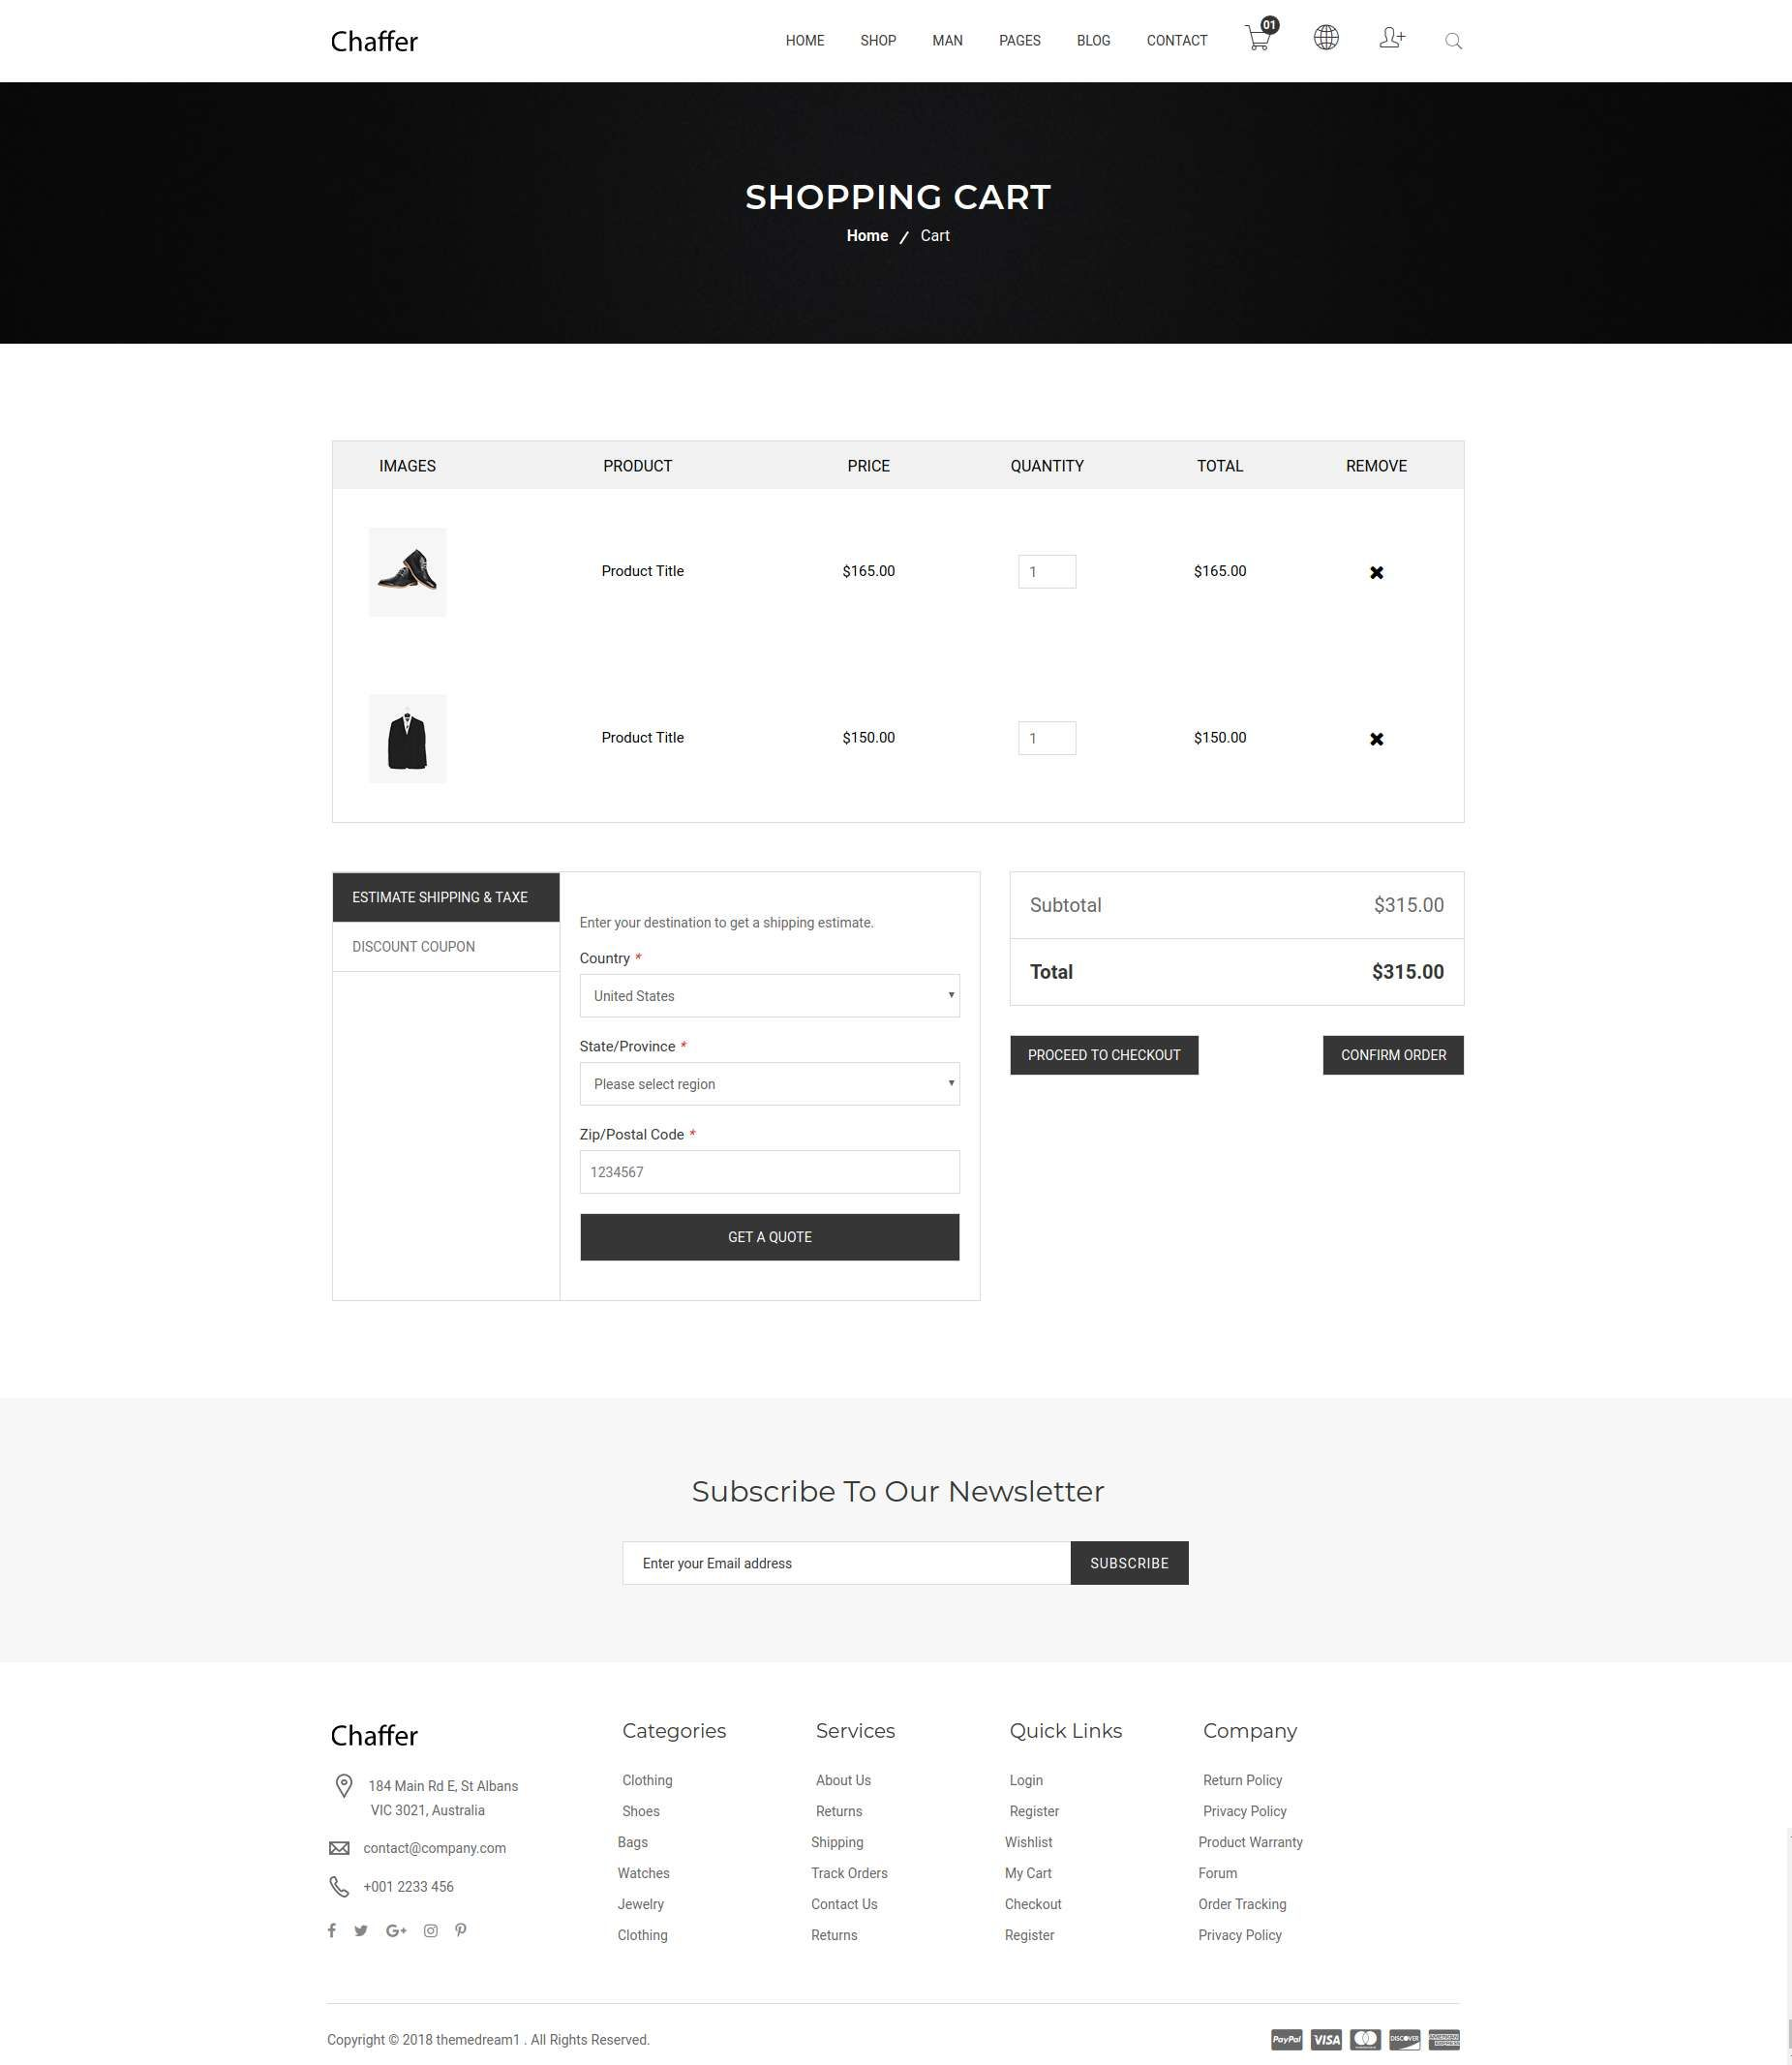 Chaffer Minimal Ecommerce Template Shopping Pinterest